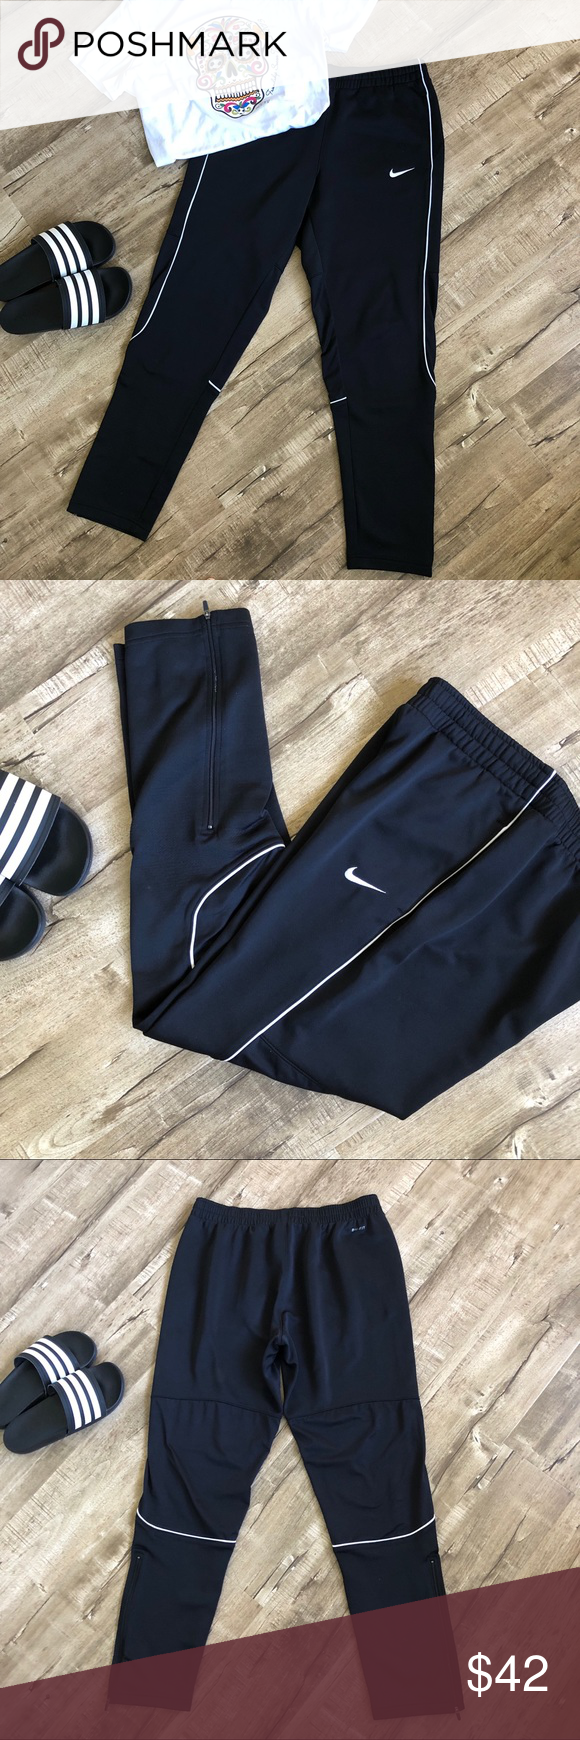 892901f64bc1 Women s Nike Large Black soccer warm up pants Lg Perfect for before or  after a soccer game or coaching. Wide elastic drawstring waist